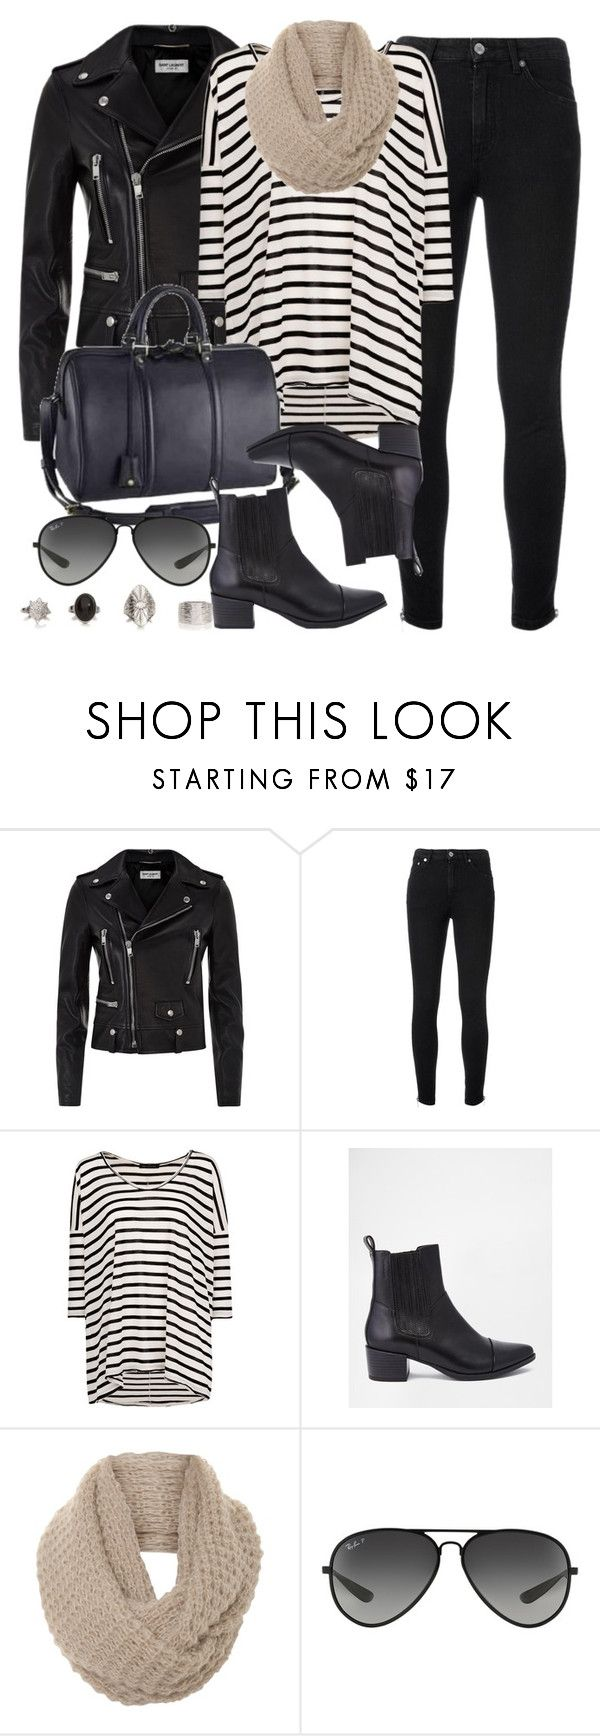 """""""Style #9811"""" by vany-alvarado ❤ liked on Polyvore featuring Yves Saint Laurent, MANGO, Louis Vuitton, Vagabond, A